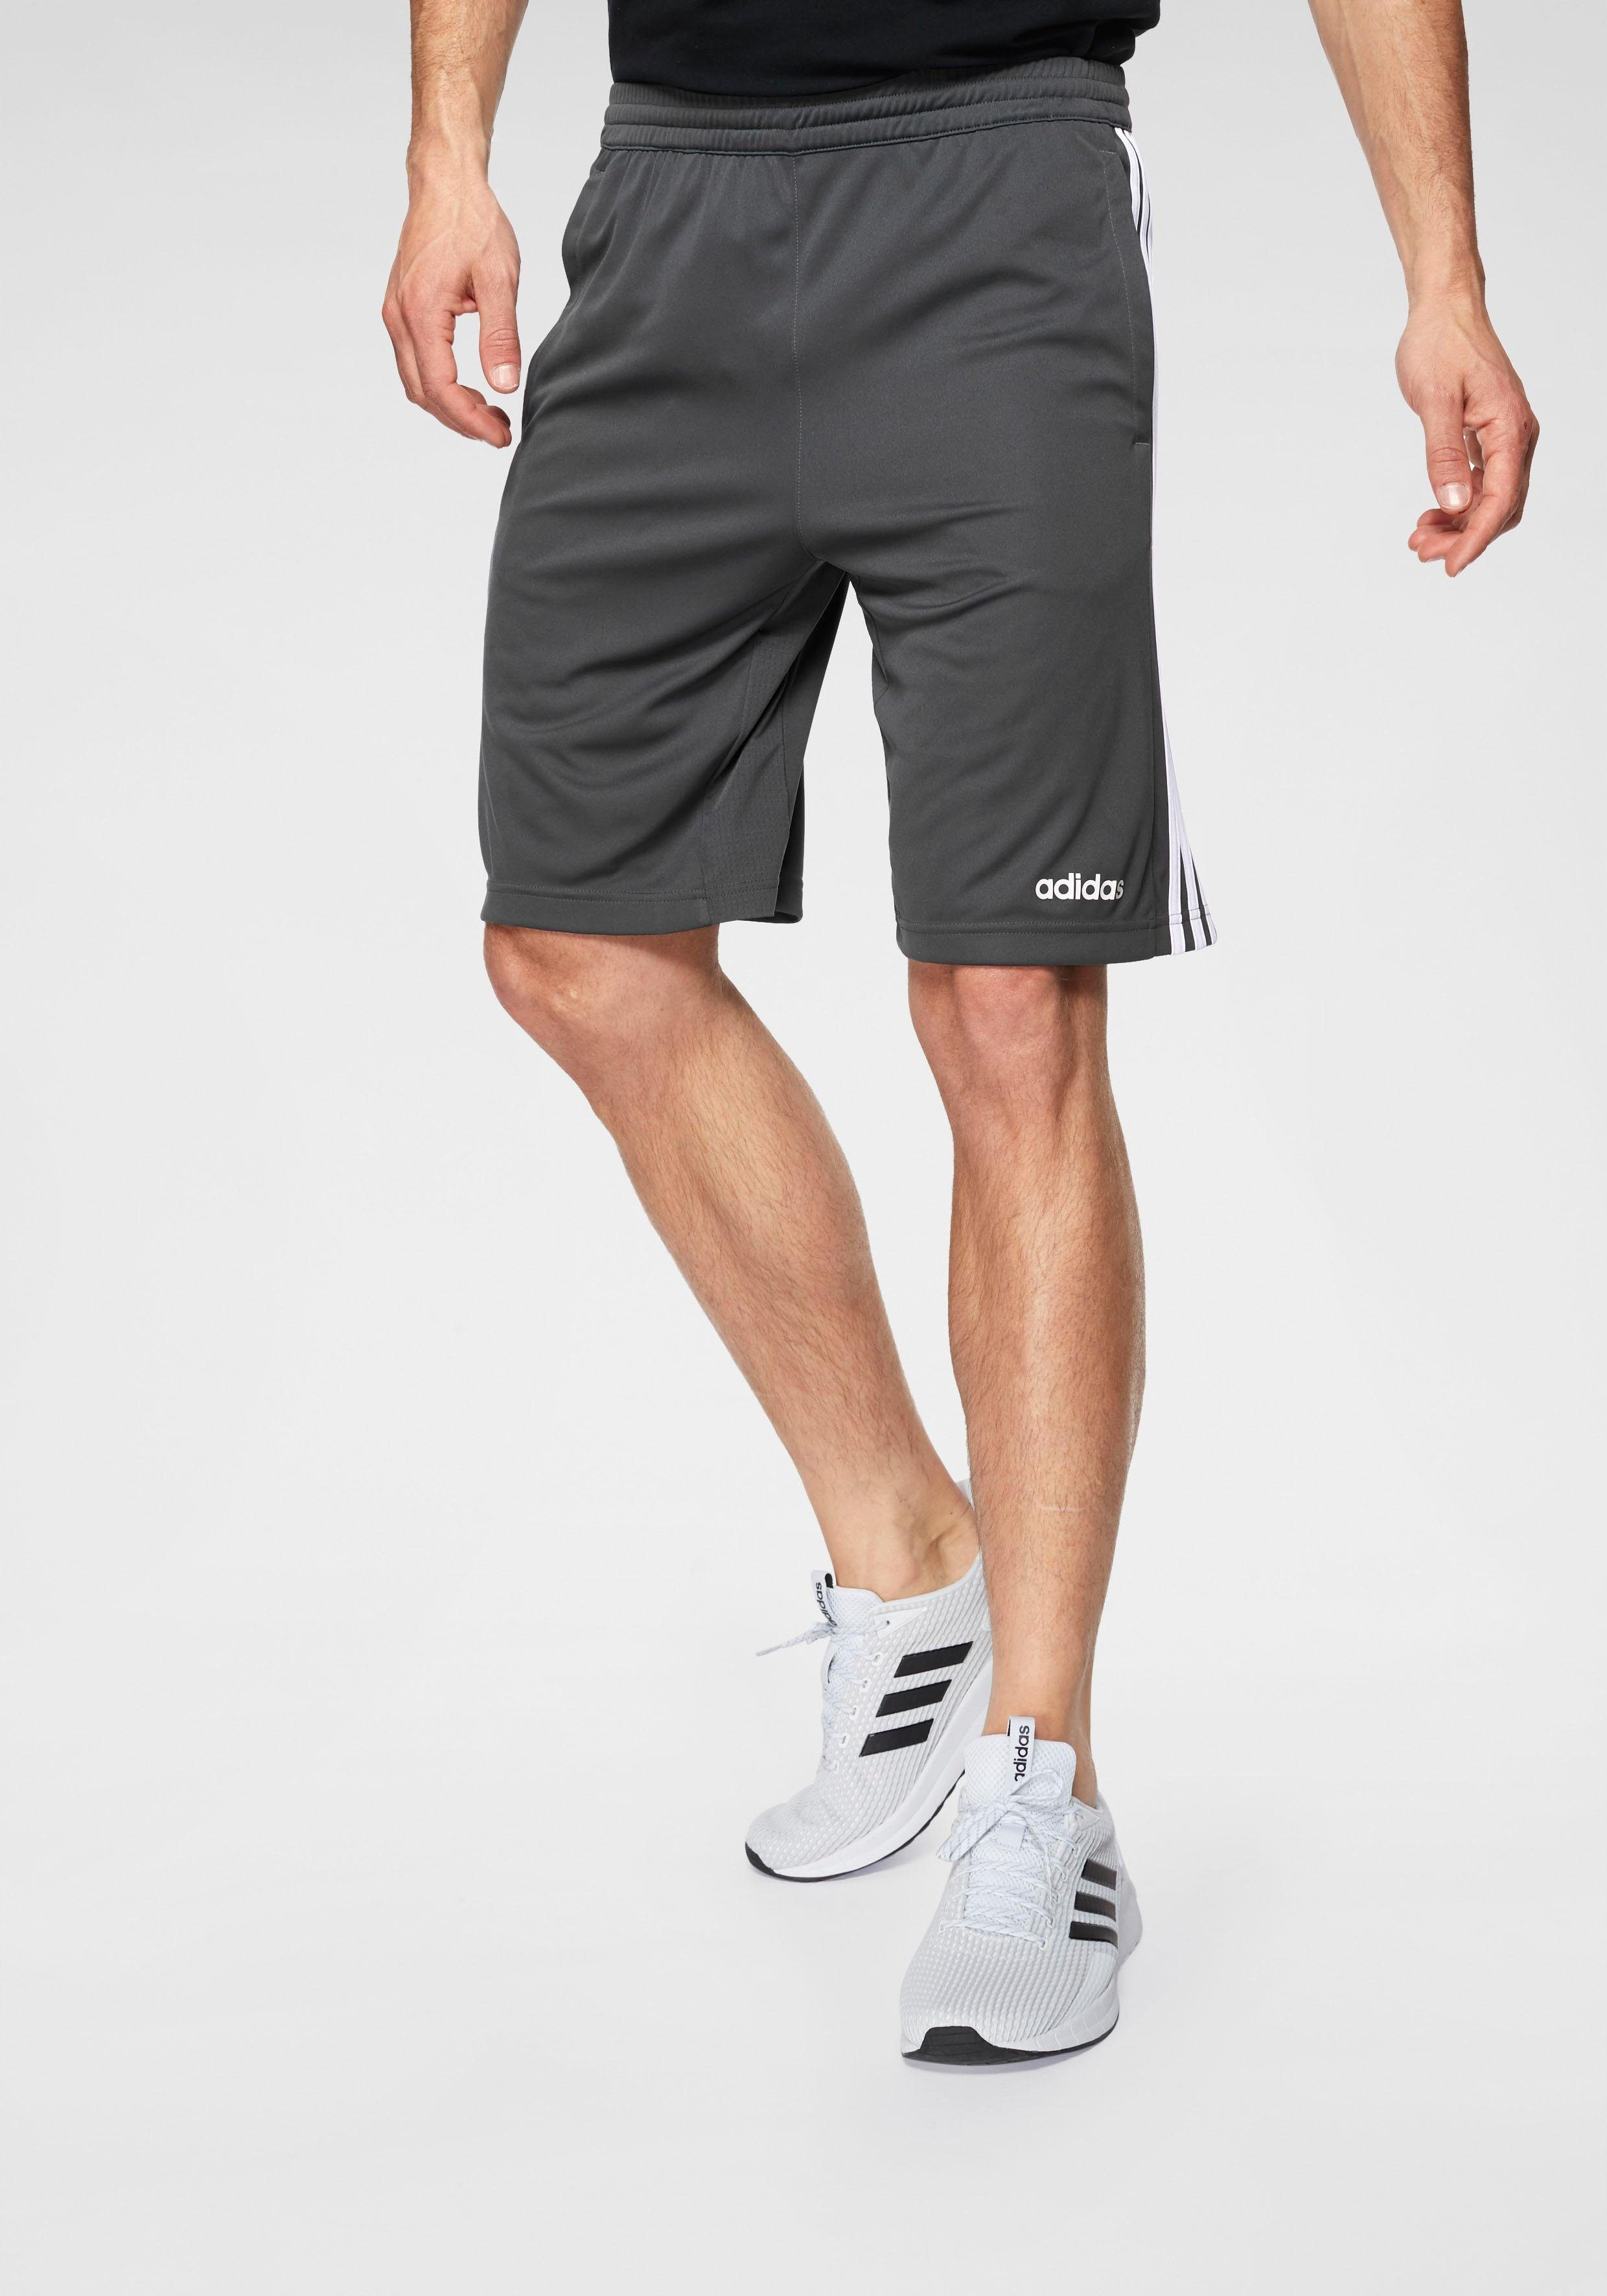 adidas Performance Funktionsshorts »D2M COOL SHORTS 3 STRIPES« online kaufen | OTTO